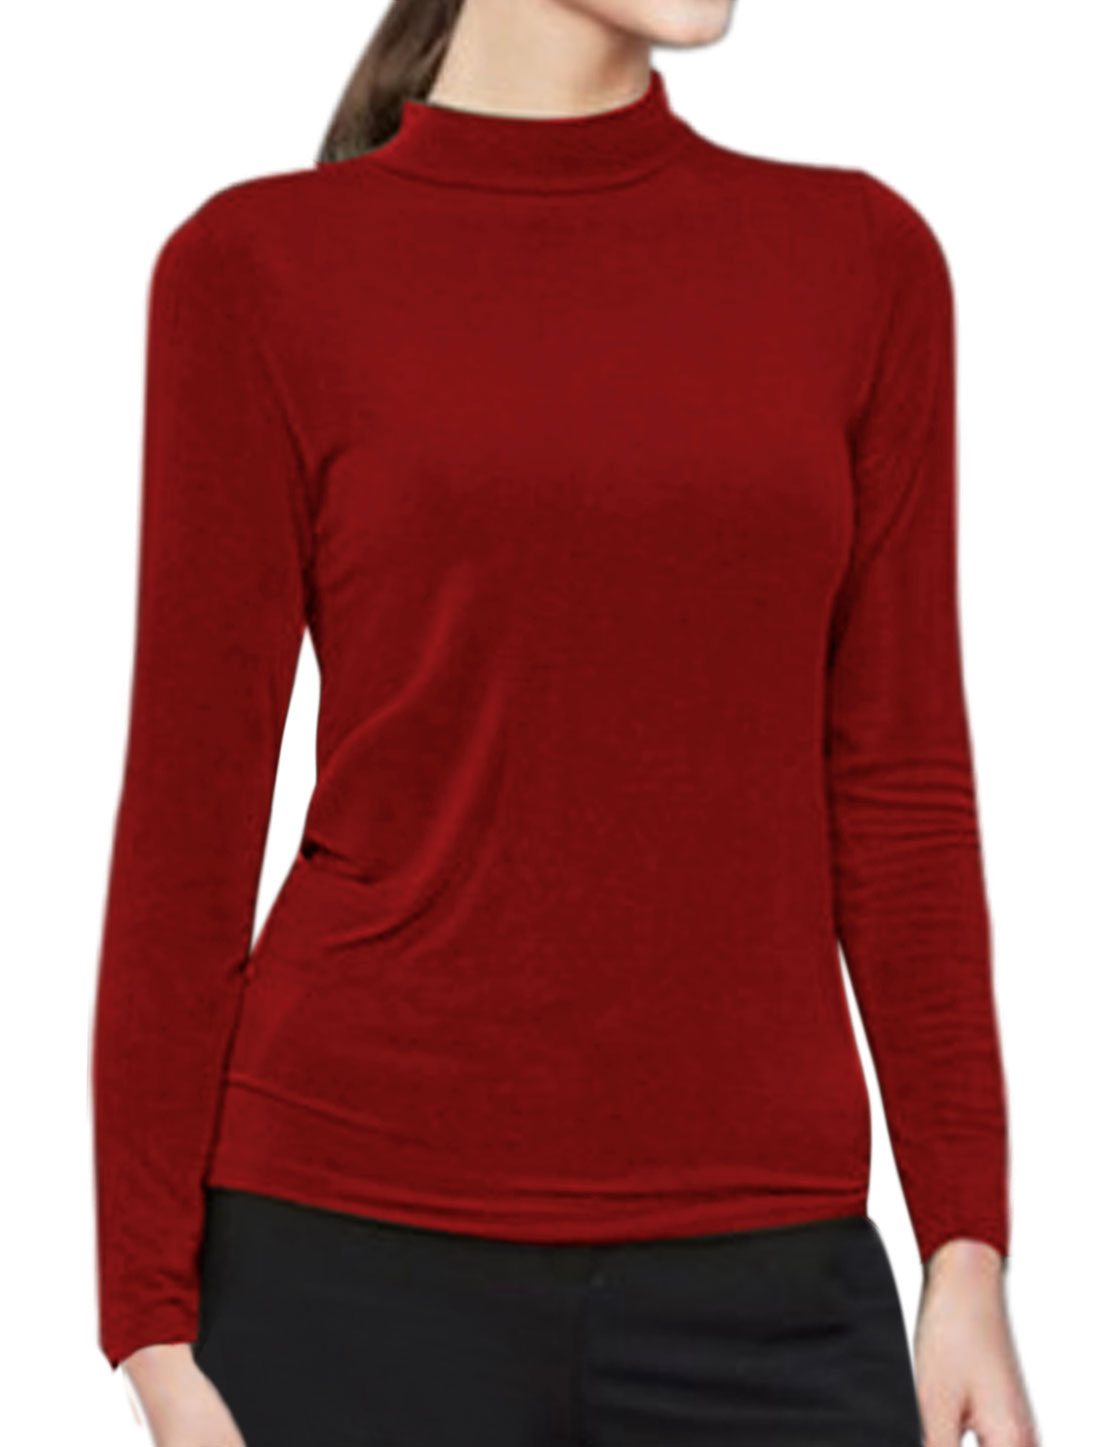 Women Mock Neck Form Fitting Long Sleeves Top Red M